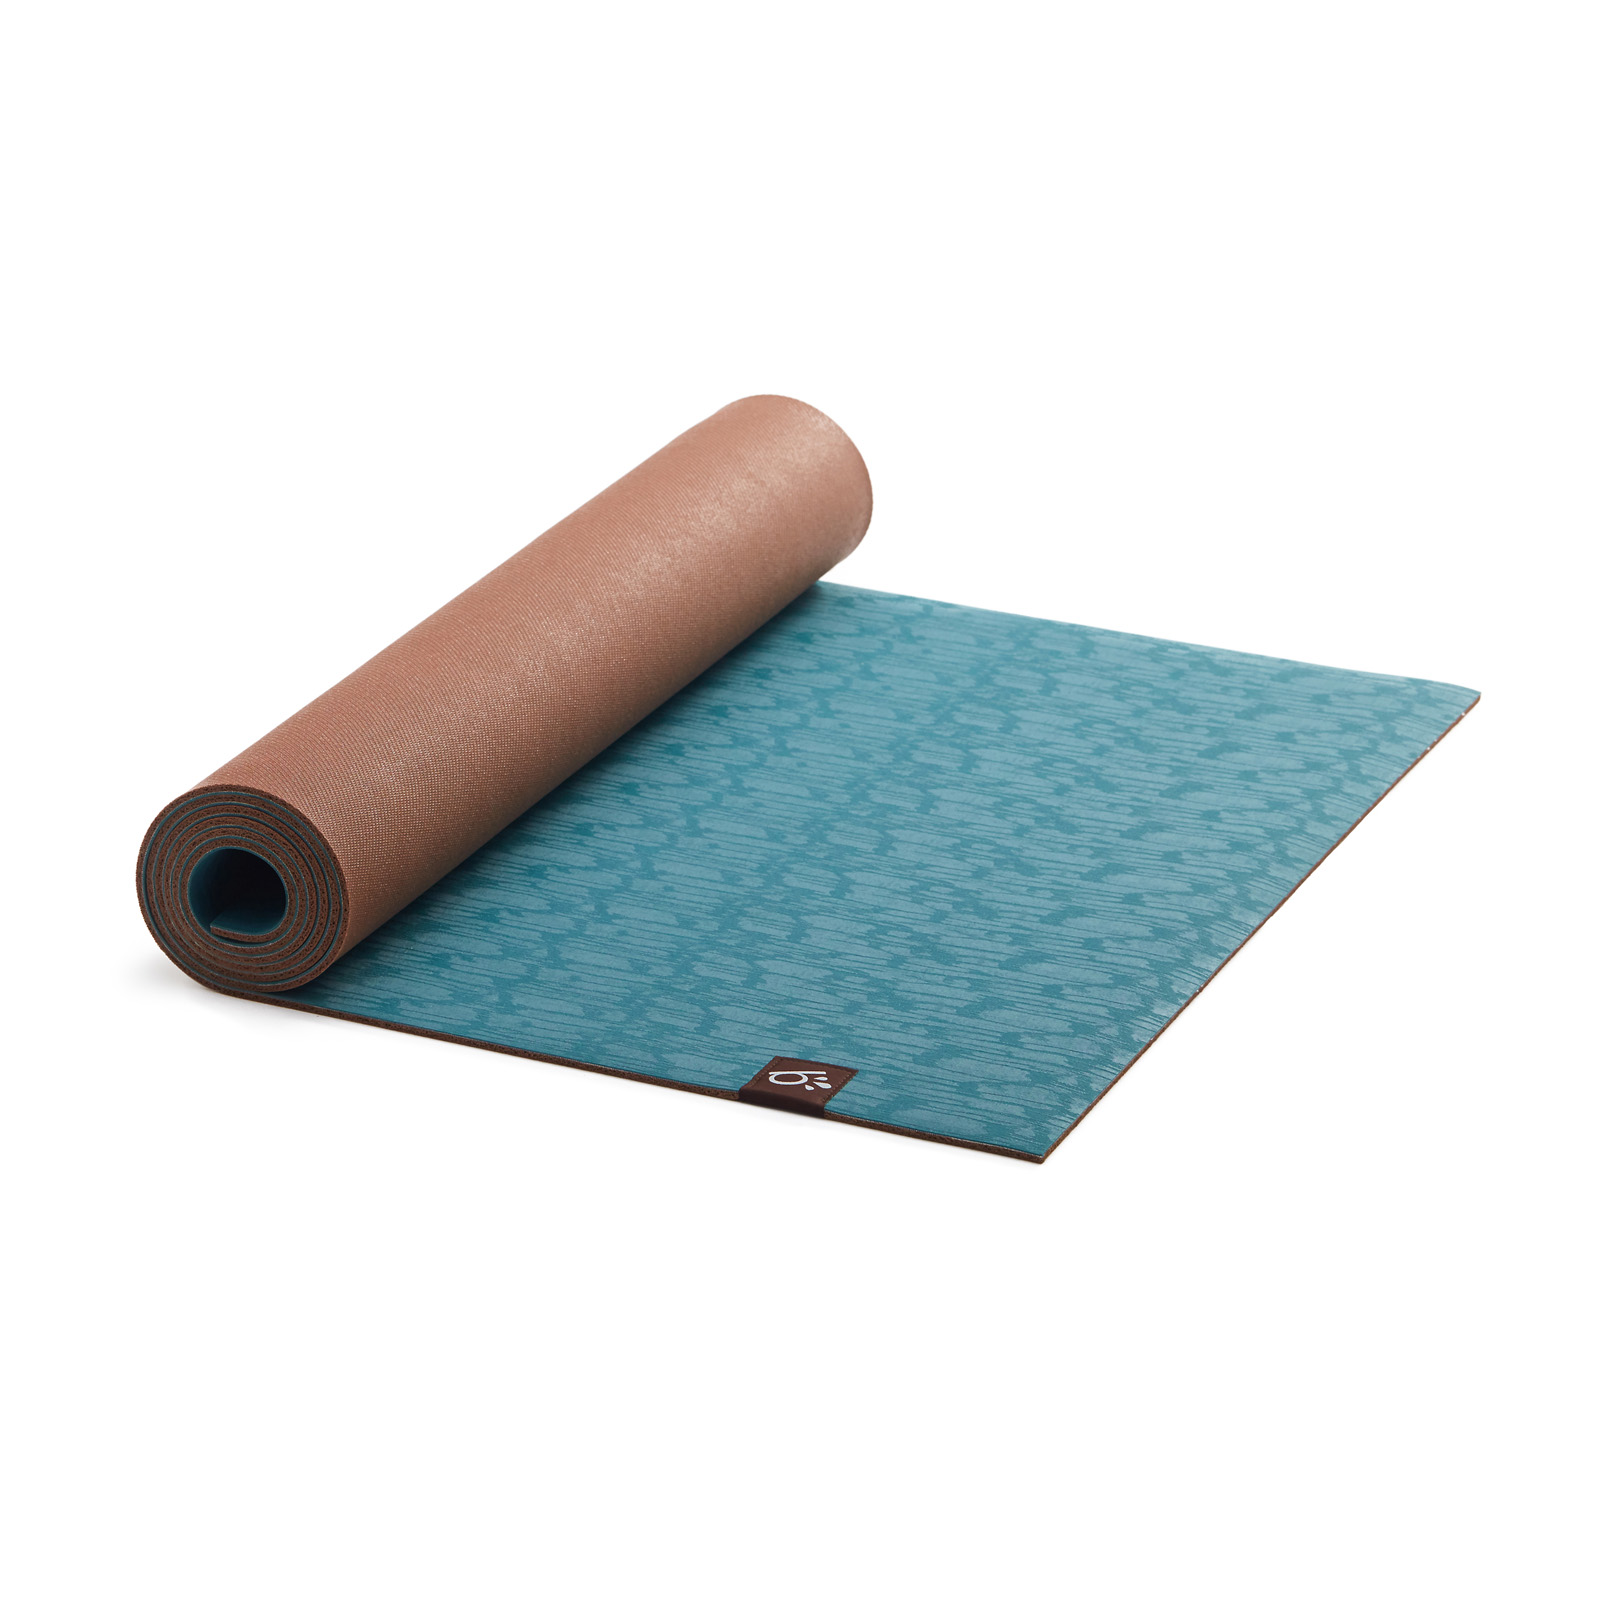 B Earth Yoga Mat Biodegradable